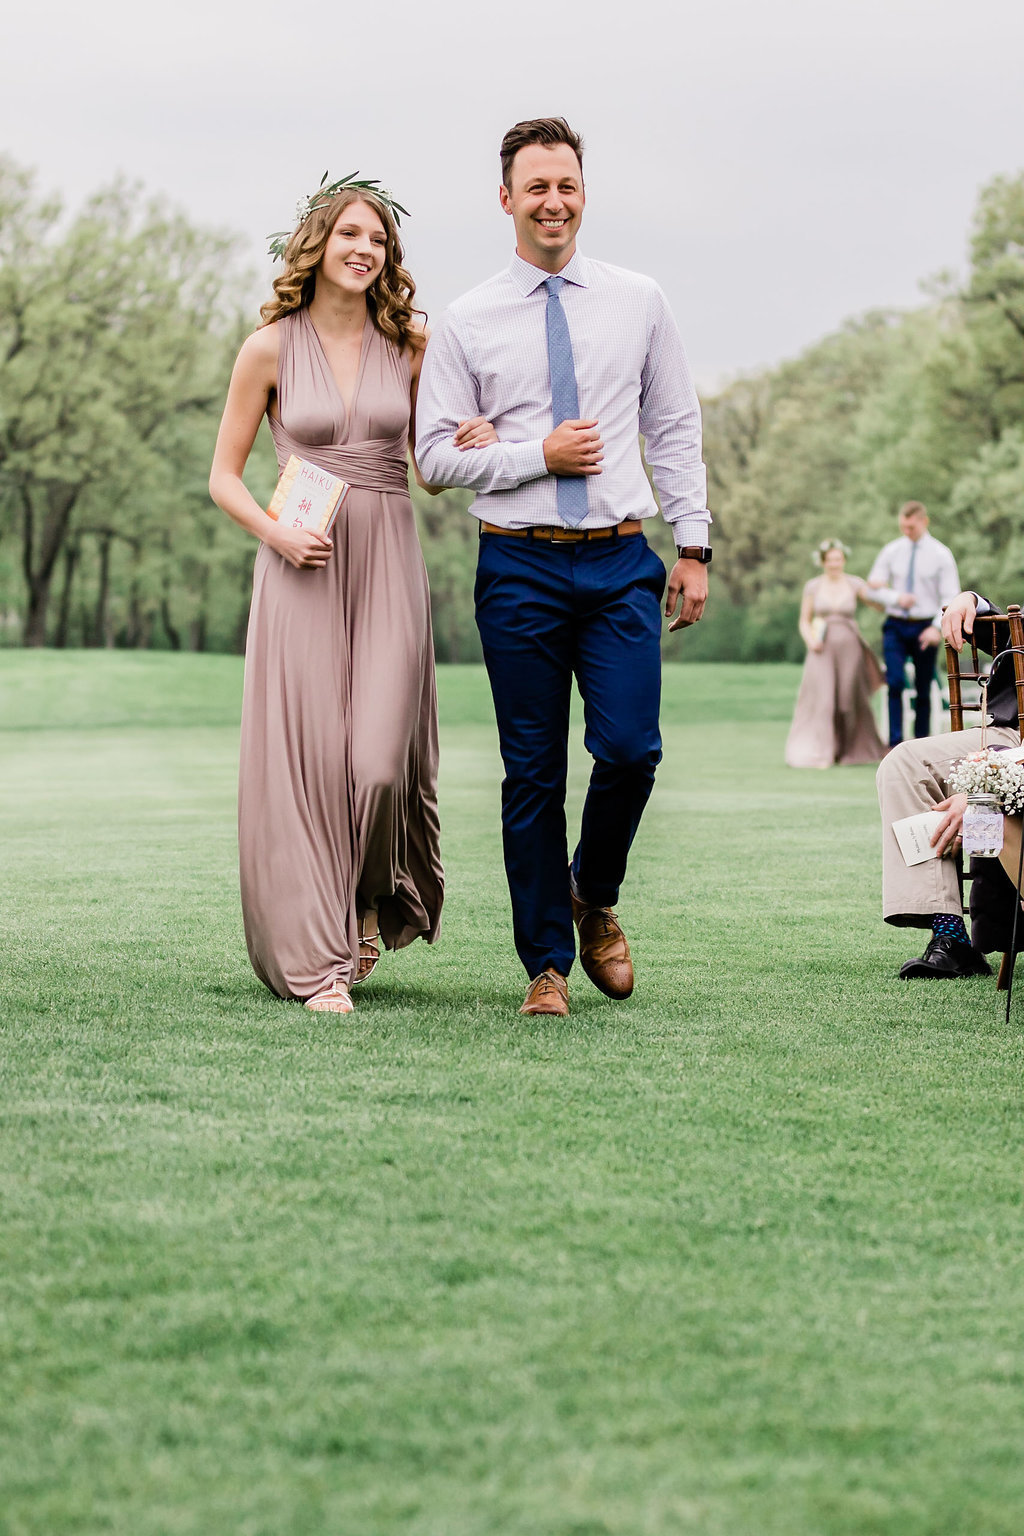 Elizabeth M Photography Washington DC Wedding Photographer Northern Virginia Maryland Destination Fine Art Elegant Engagement83